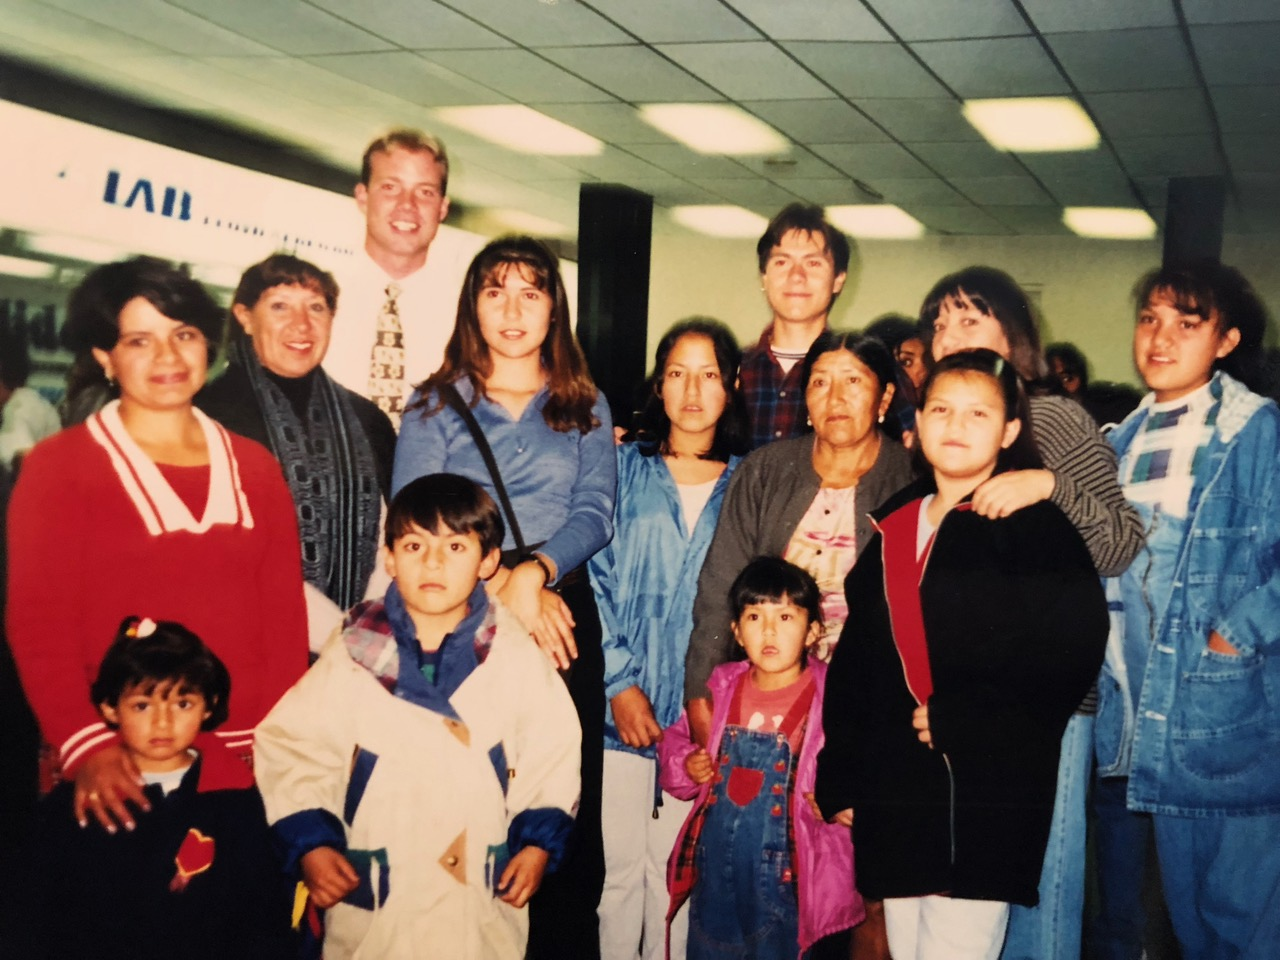 Davis Smith with several families he taught while serving in Bolivia 20 years ago. The members accompanied him to the airport when he was transferred from their area.